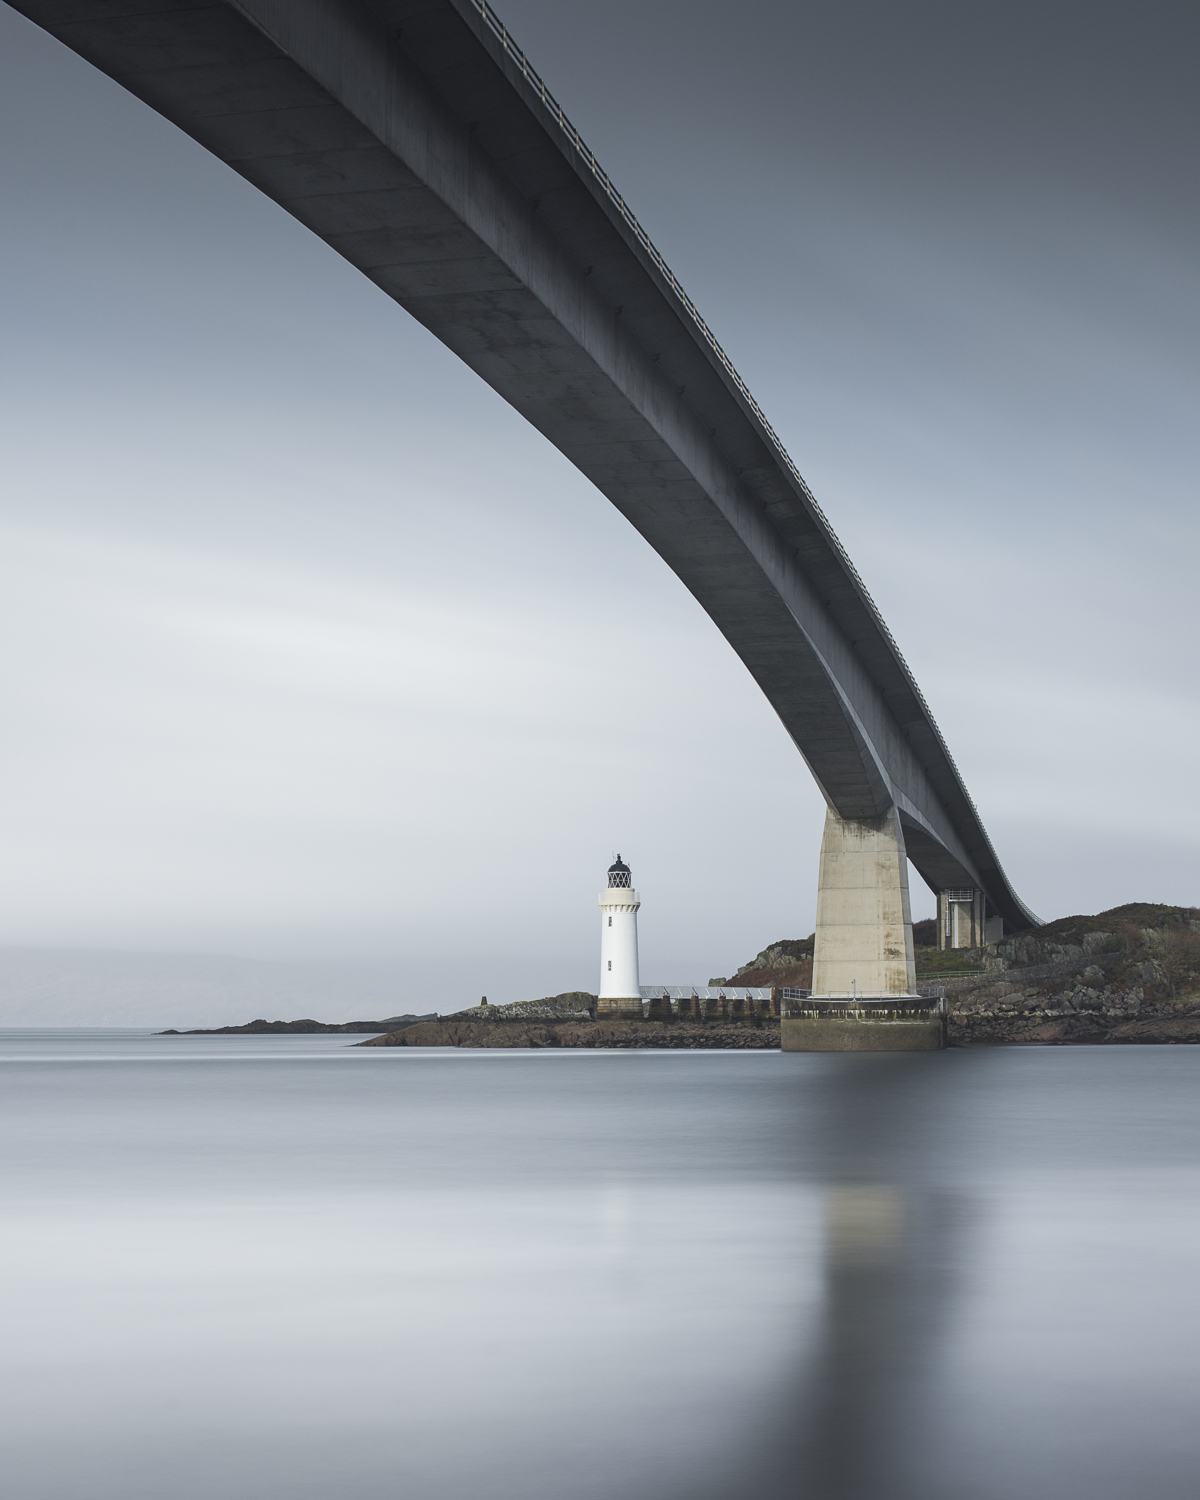 Skye Bridge, 0.6 soft ND Grad and Pro Glass 15 stop filters. Processed in Lightroom and Photoshop.